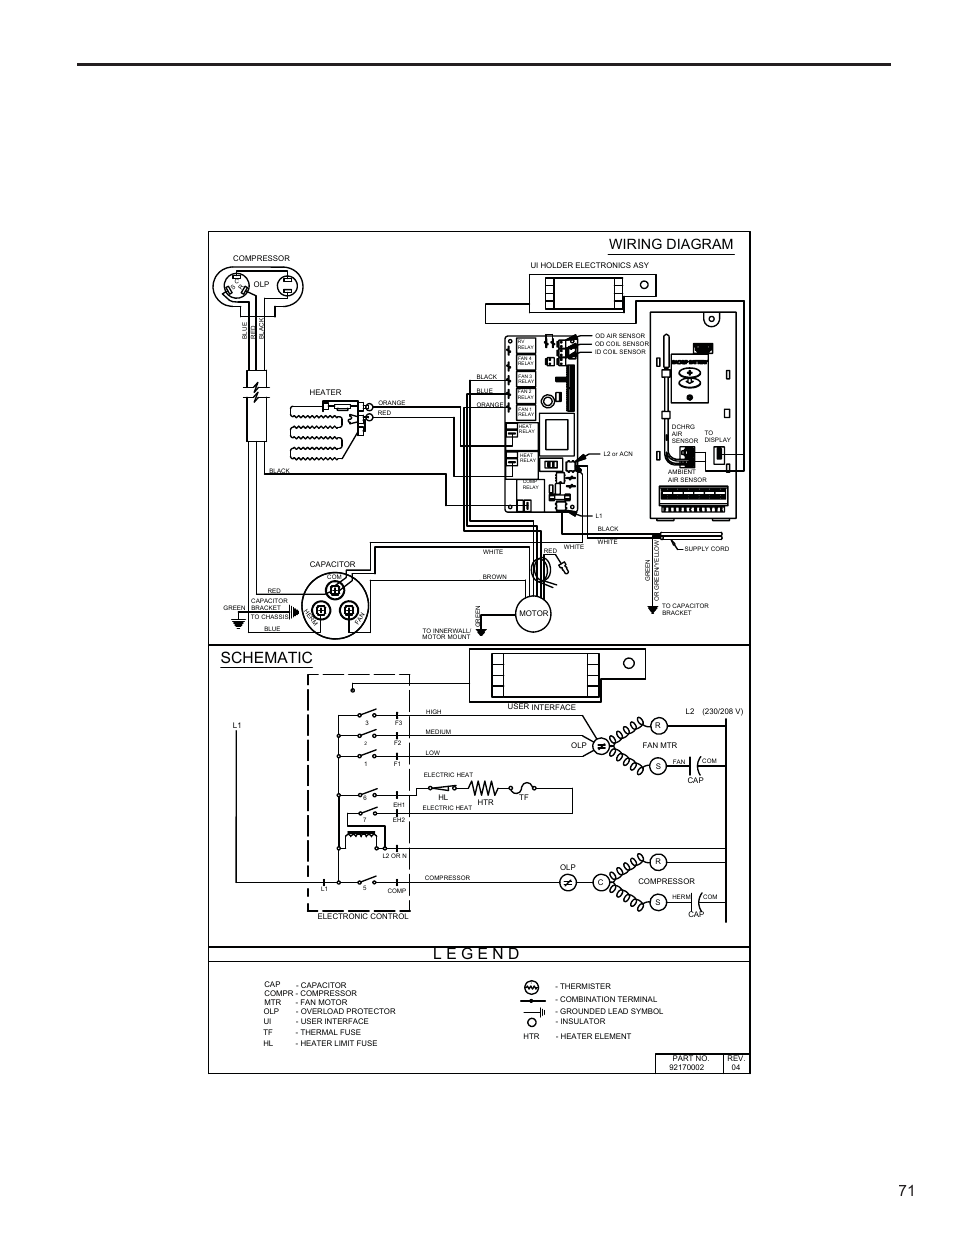 olp wiring diagram automotive wiring diagram library u2022 rh seigokanengland co uk olp mm2 wiring diagram